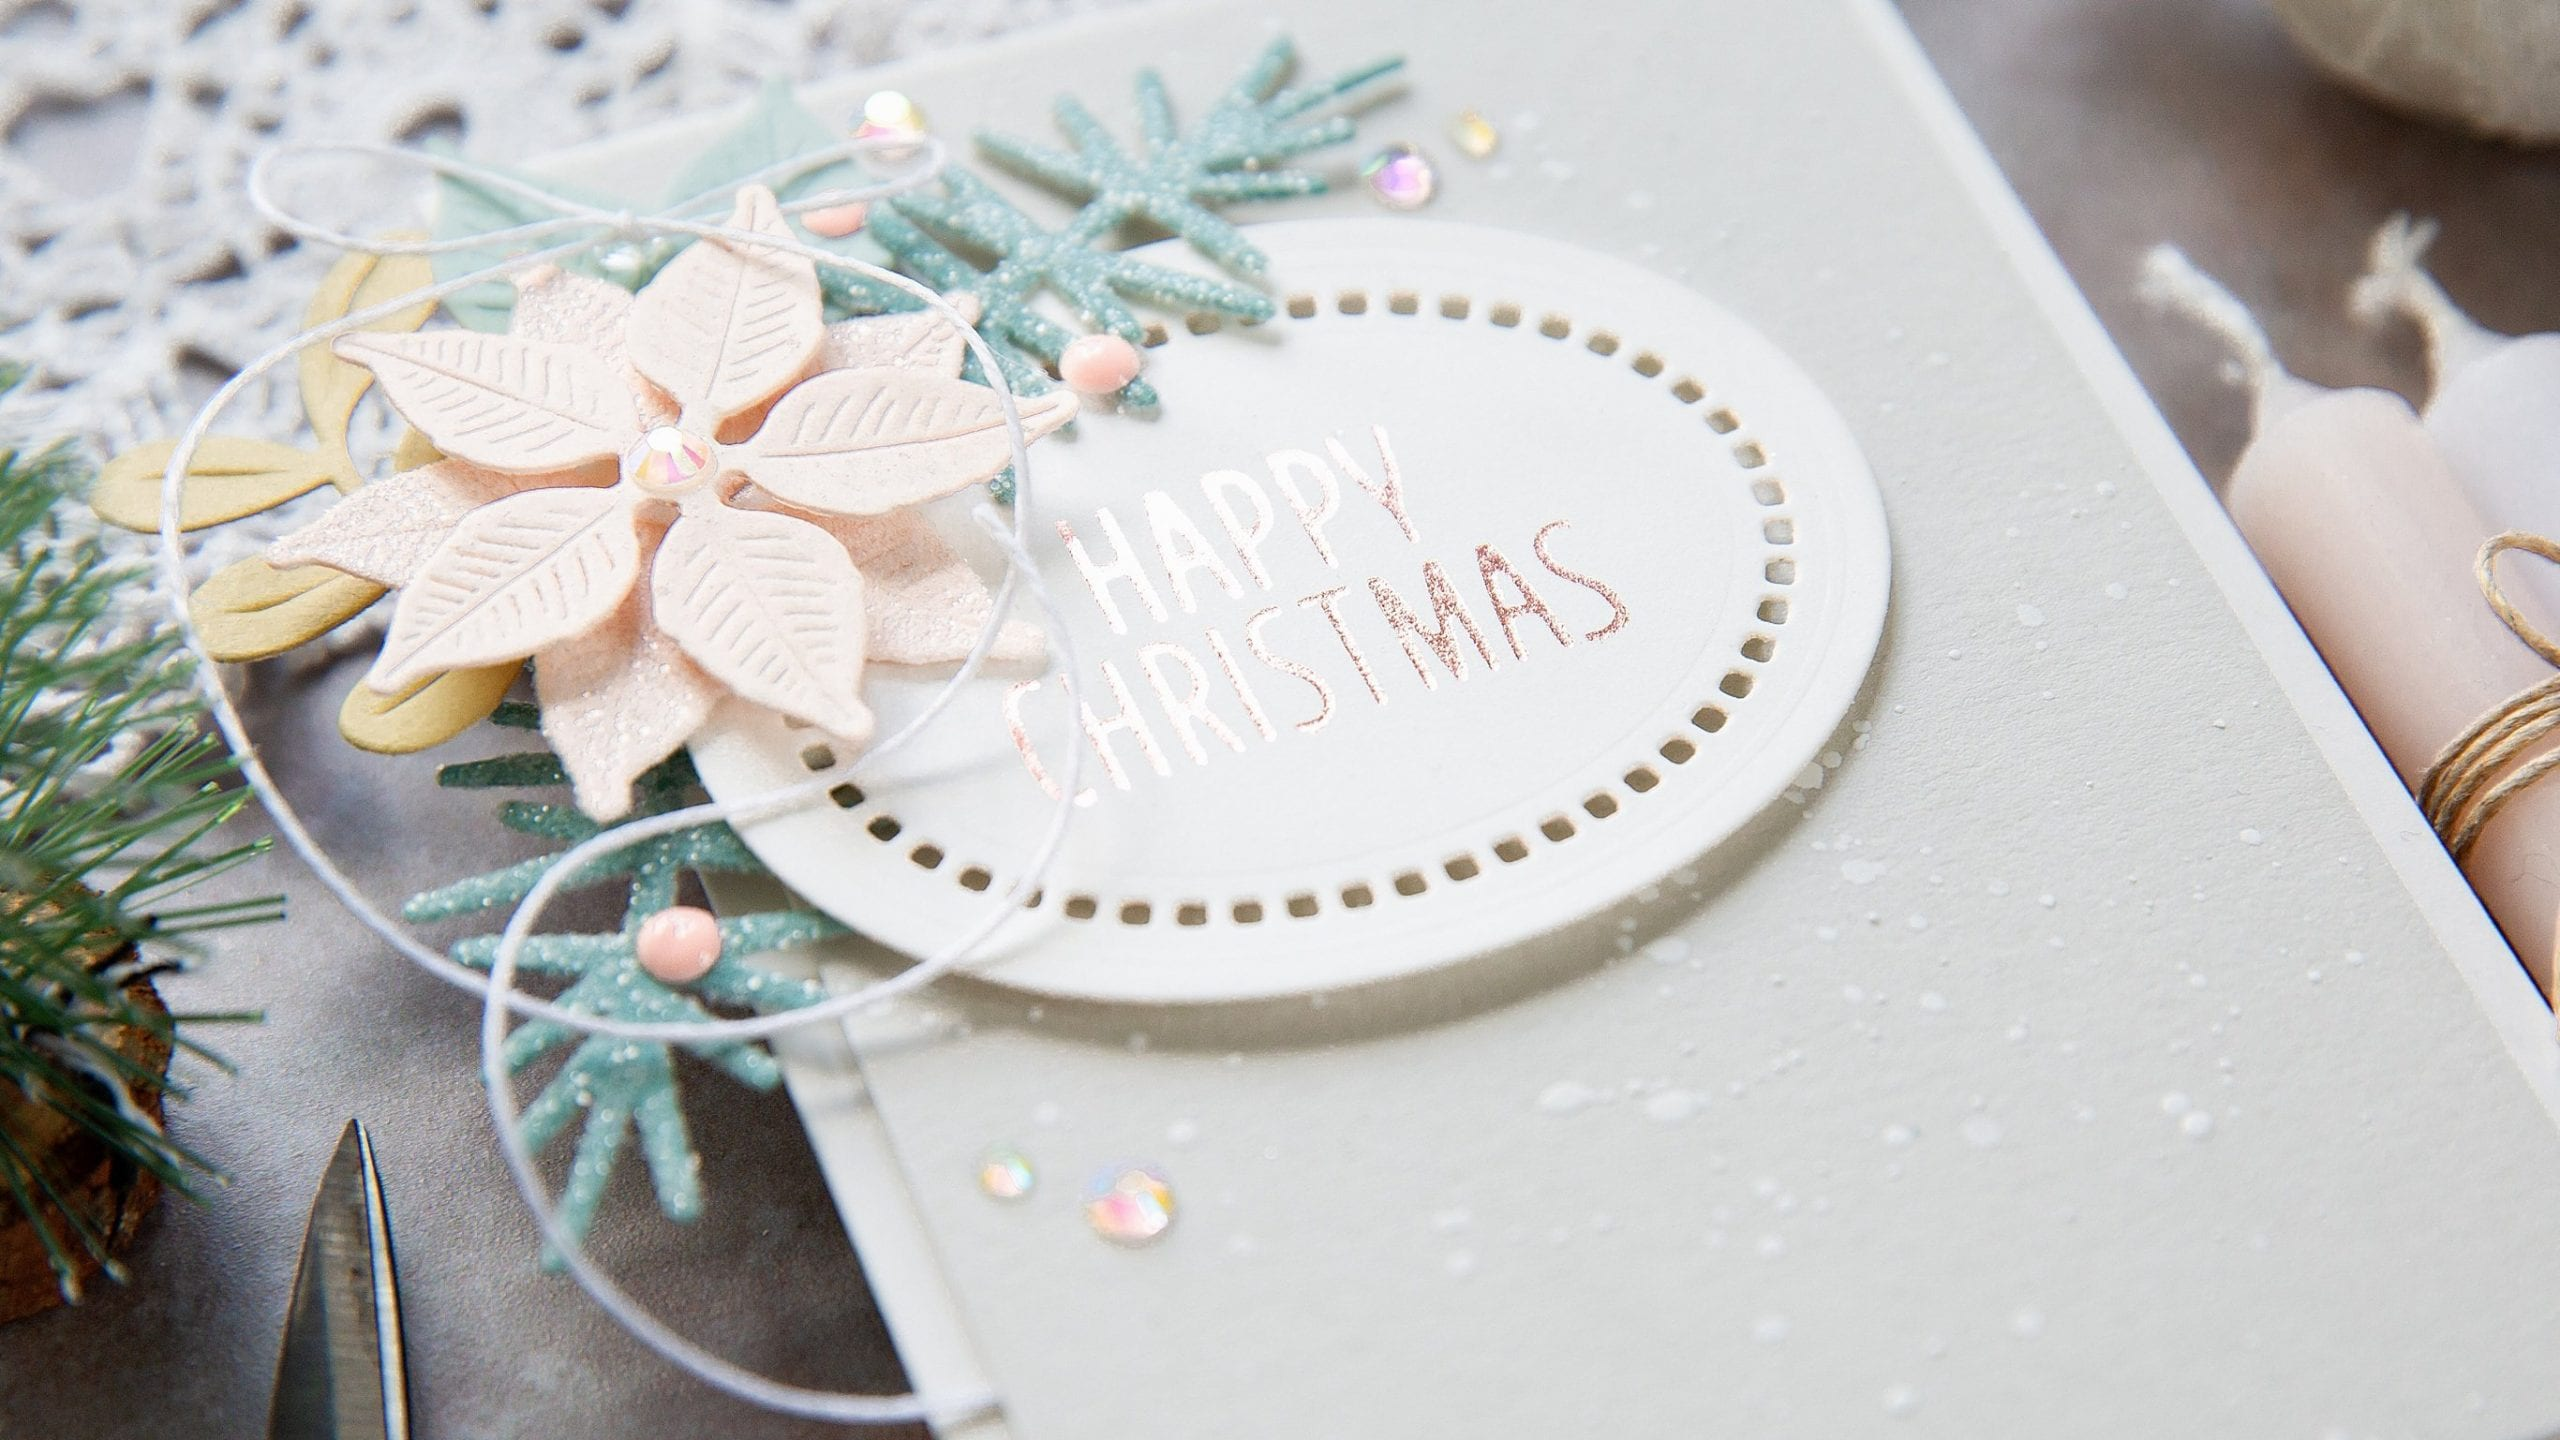 Handmade ornament Christmas cards with rose gold glimmer foil and painted die cuts by Debby Hughes using supplies from Simon Says Stamp. Find out more here: https://limedoodledesign.com/2019/08/painted-die-cuts-all-the-glimmer-blog-hop-giveaway/